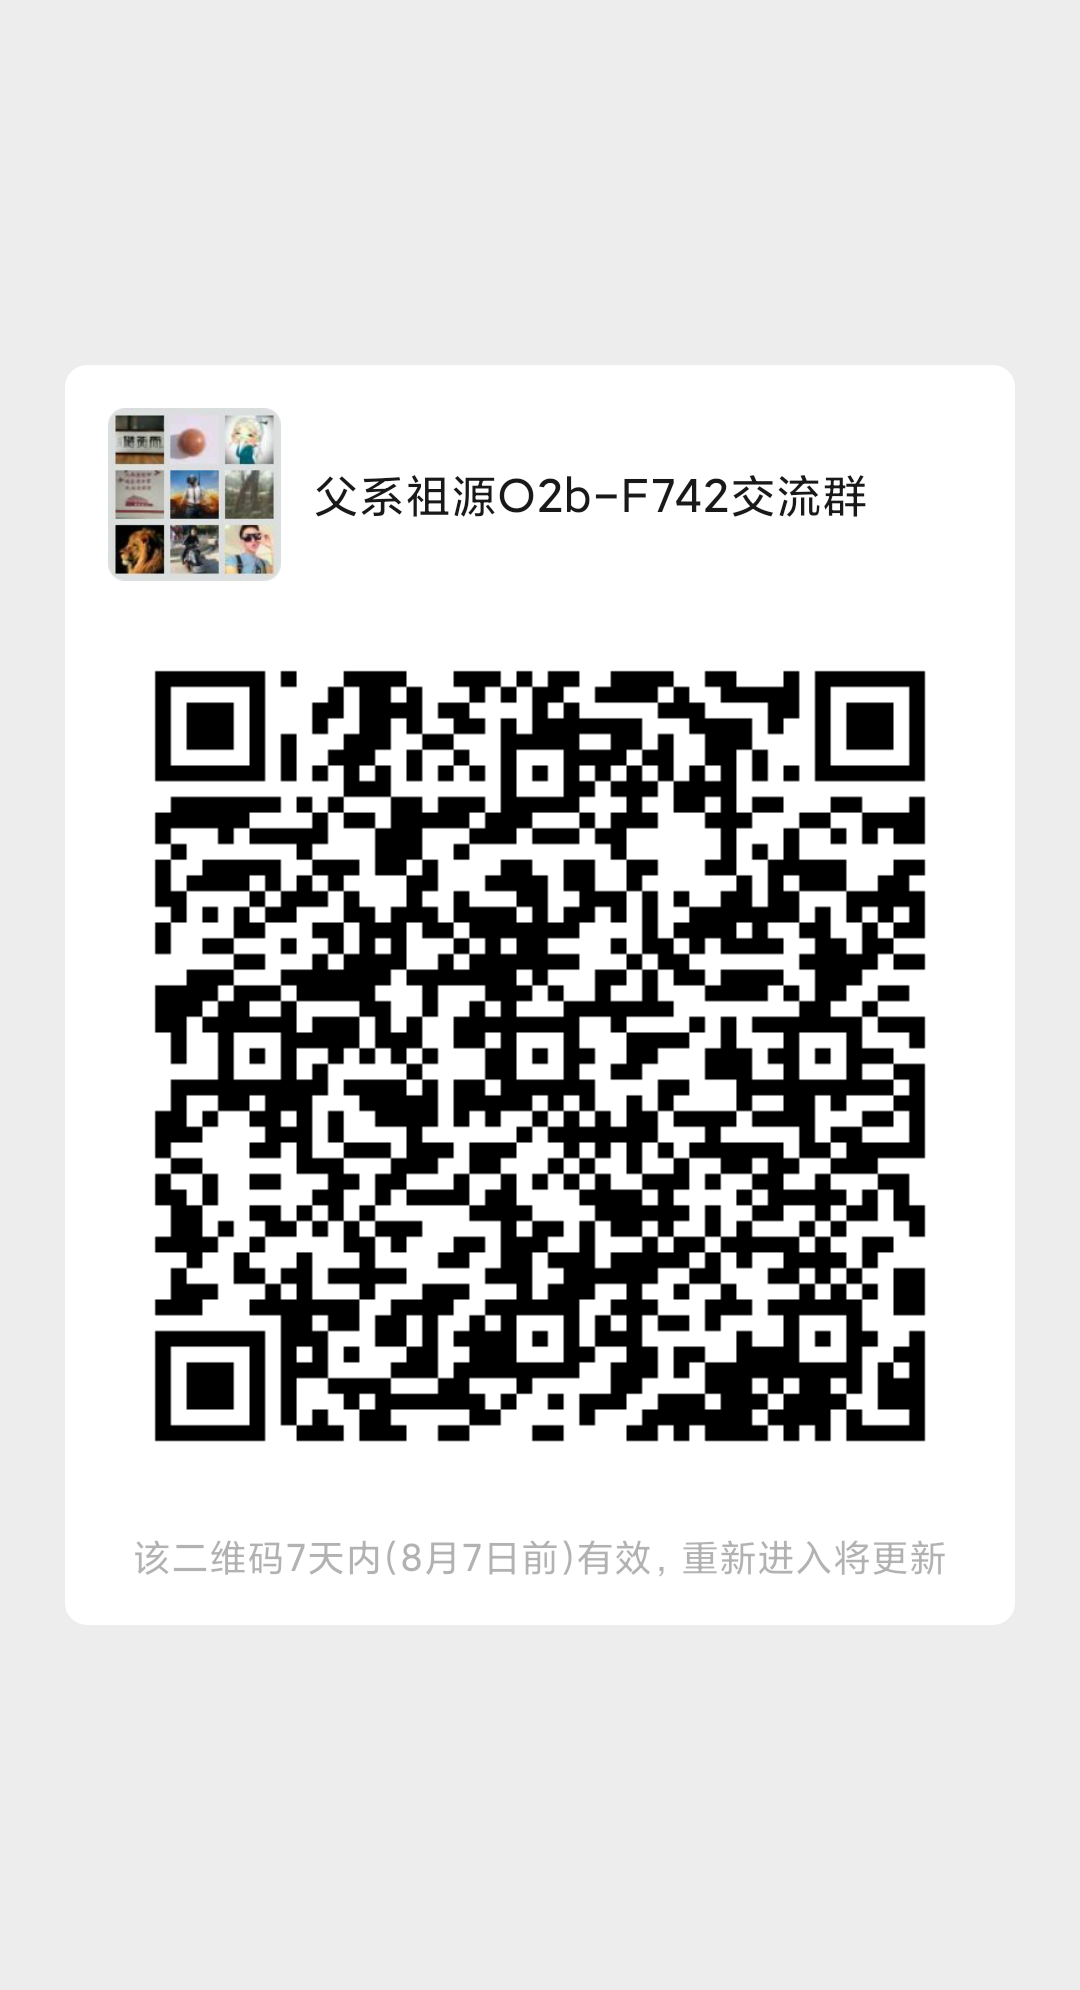 mmqrcode1596204062261.png